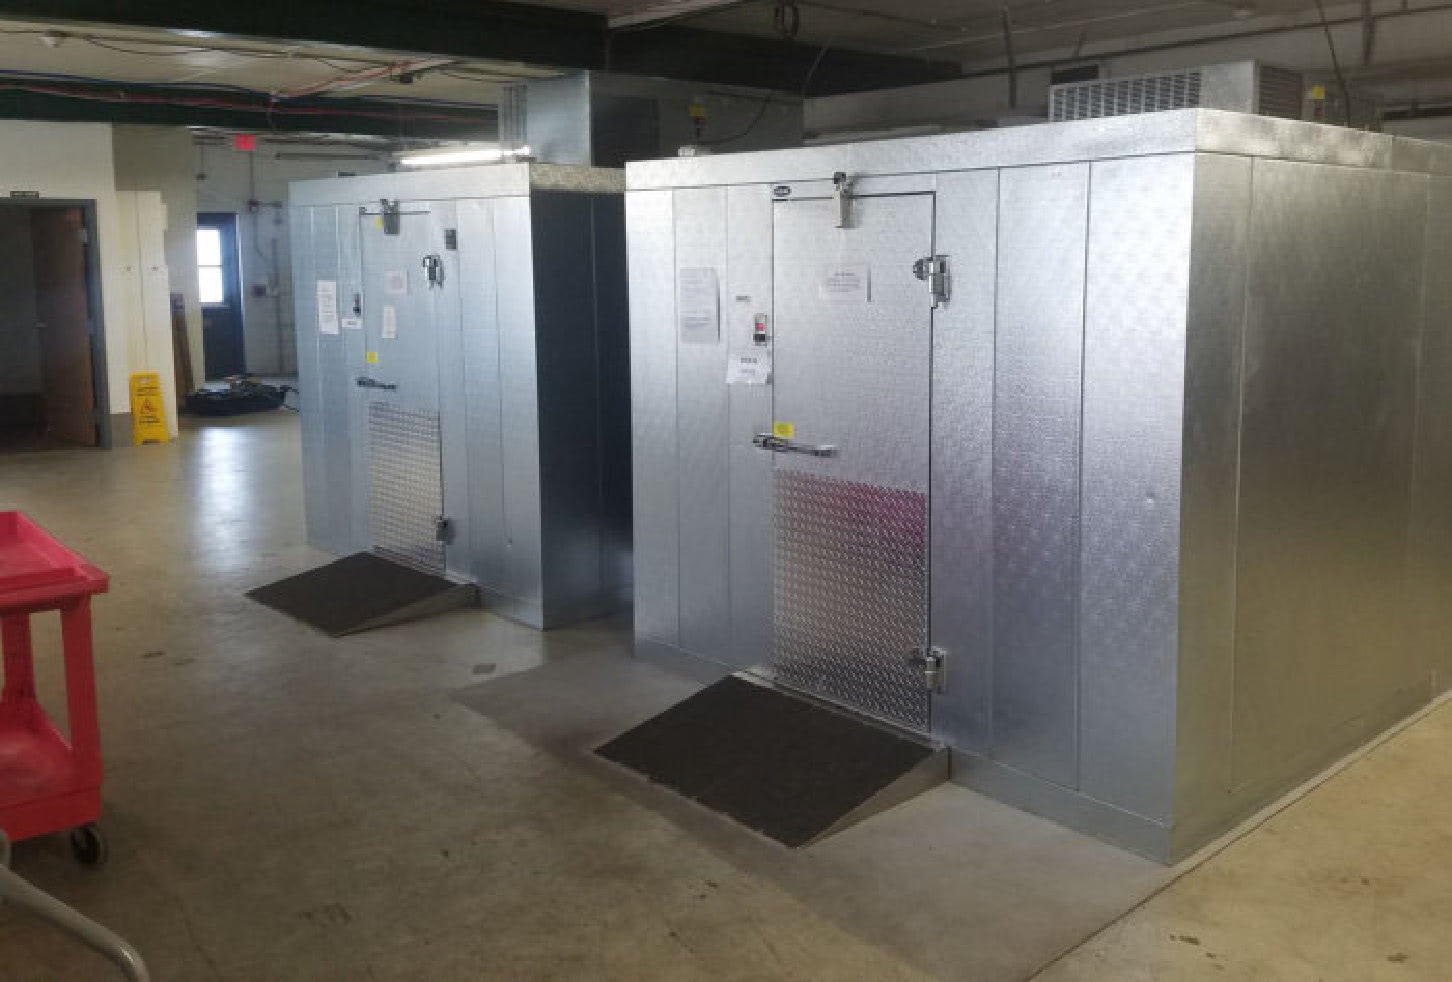 Refrigeration and coolers